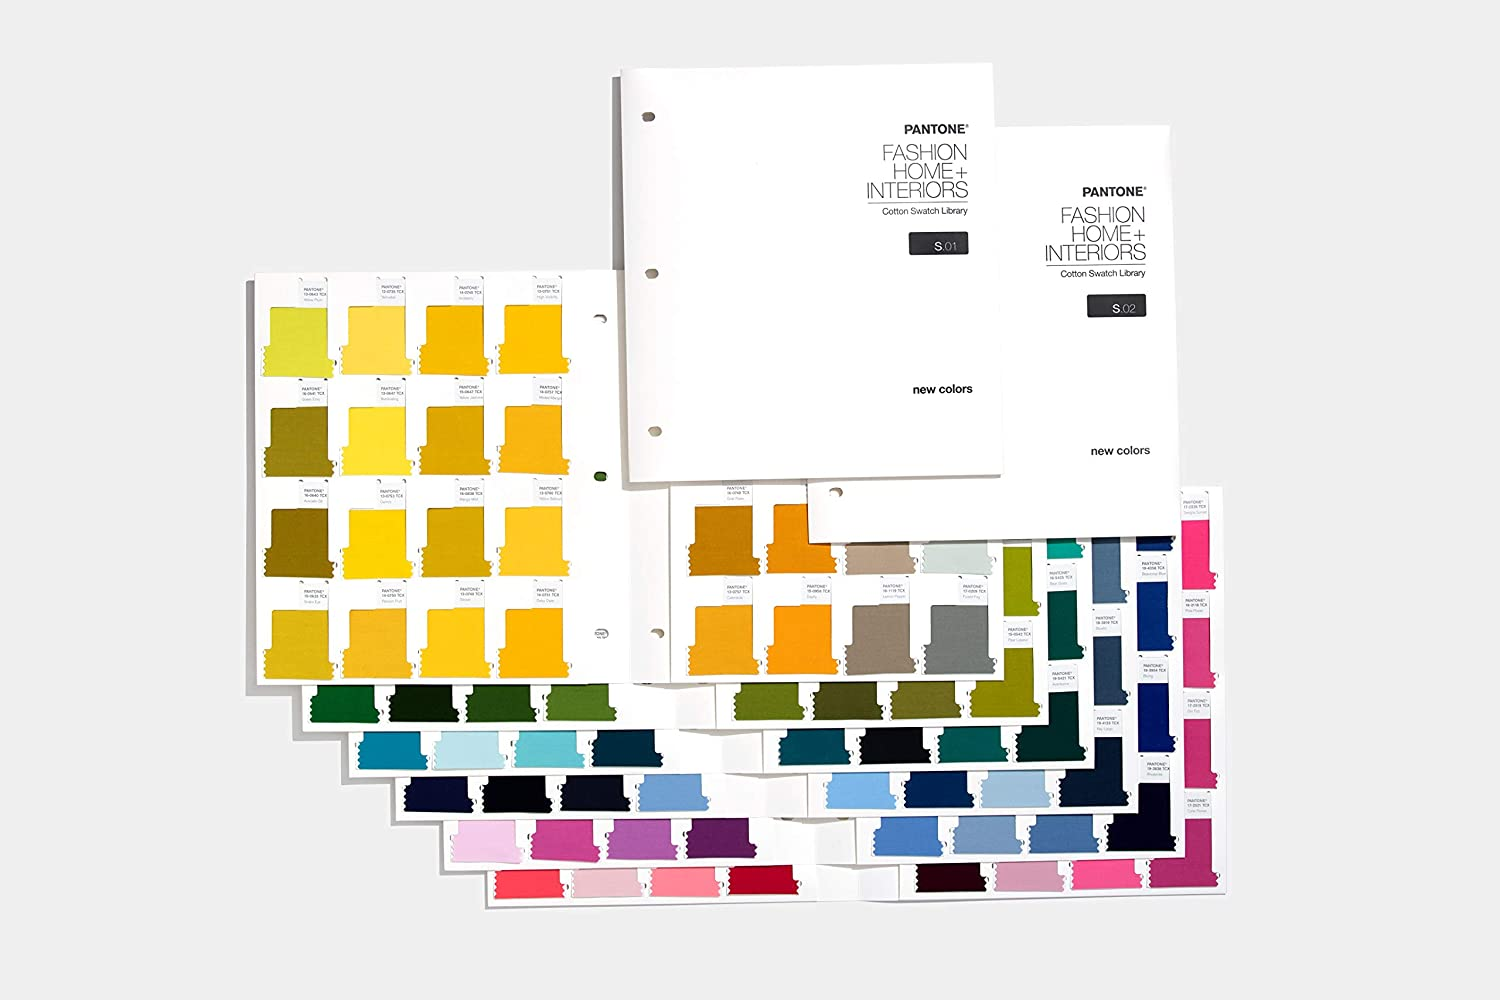 Pantone FHIC110A Swatch Library Supplement Cotton Passports, New